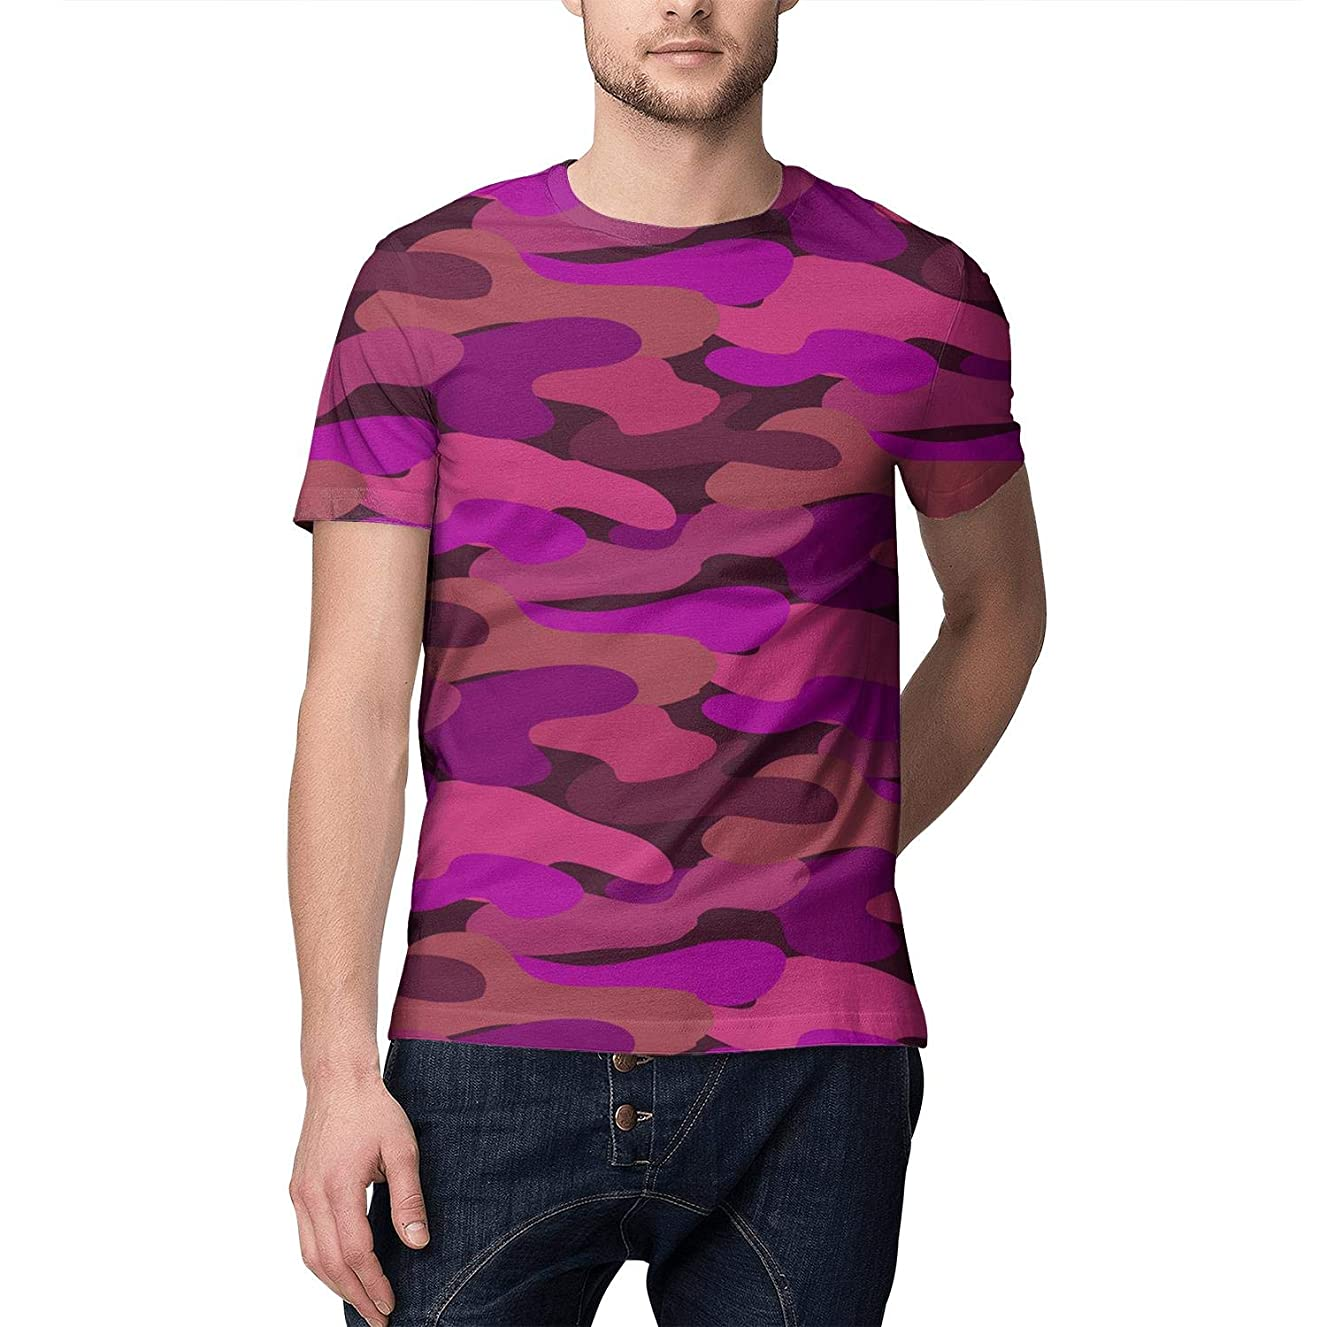 Unique Round Collar World Map Military Camo Printed Shirts for Man